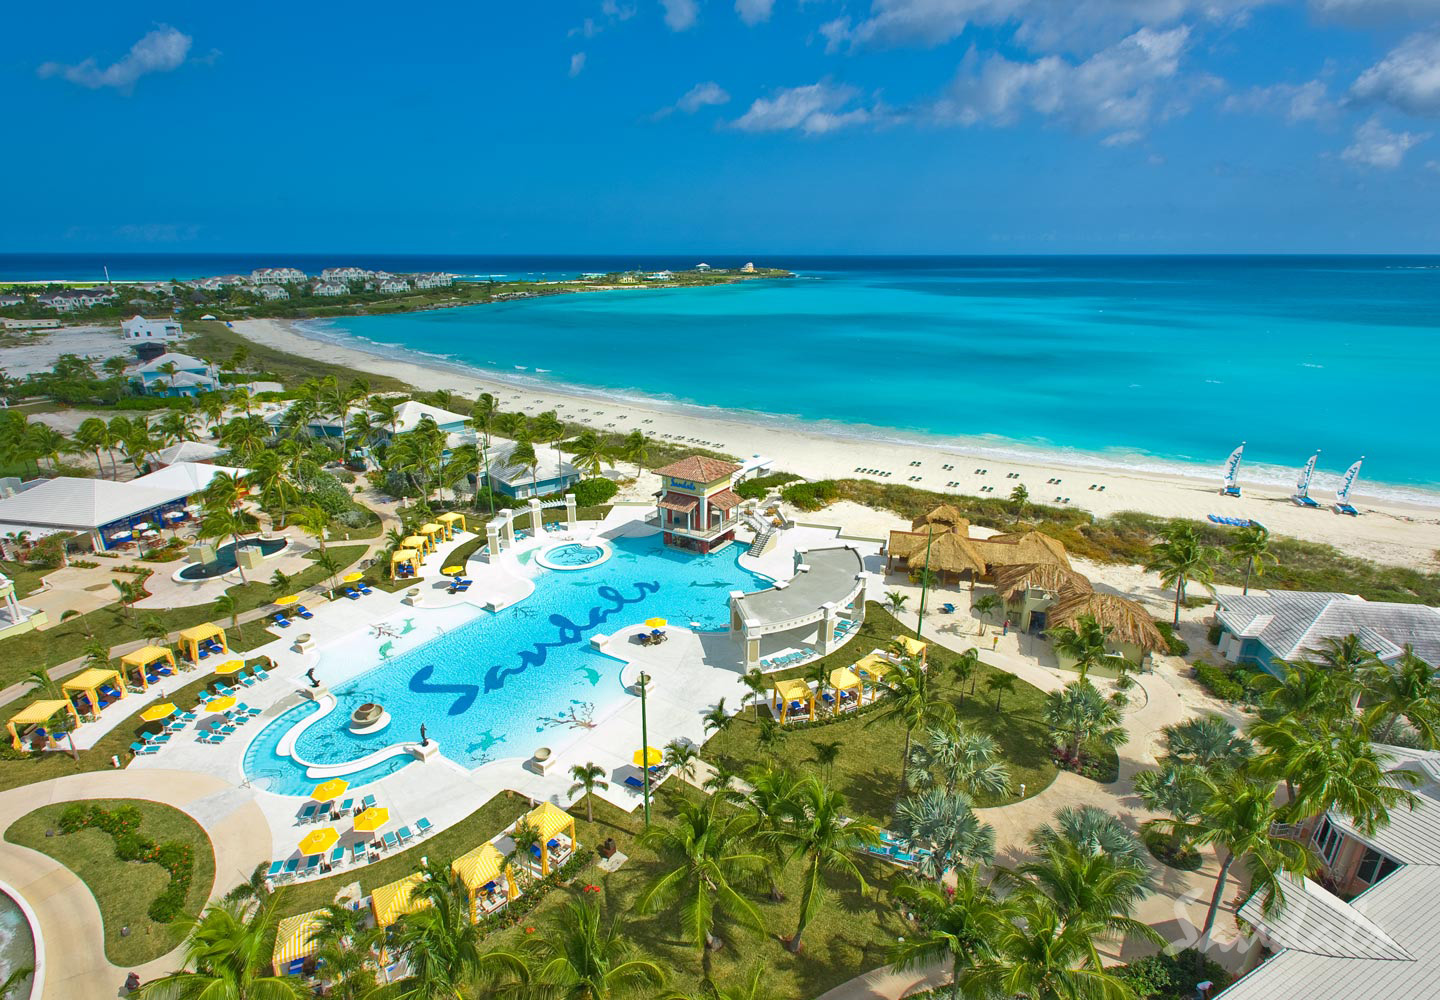 Travel Agency All-Inclusive Resort Sandals Emerald Bay 002